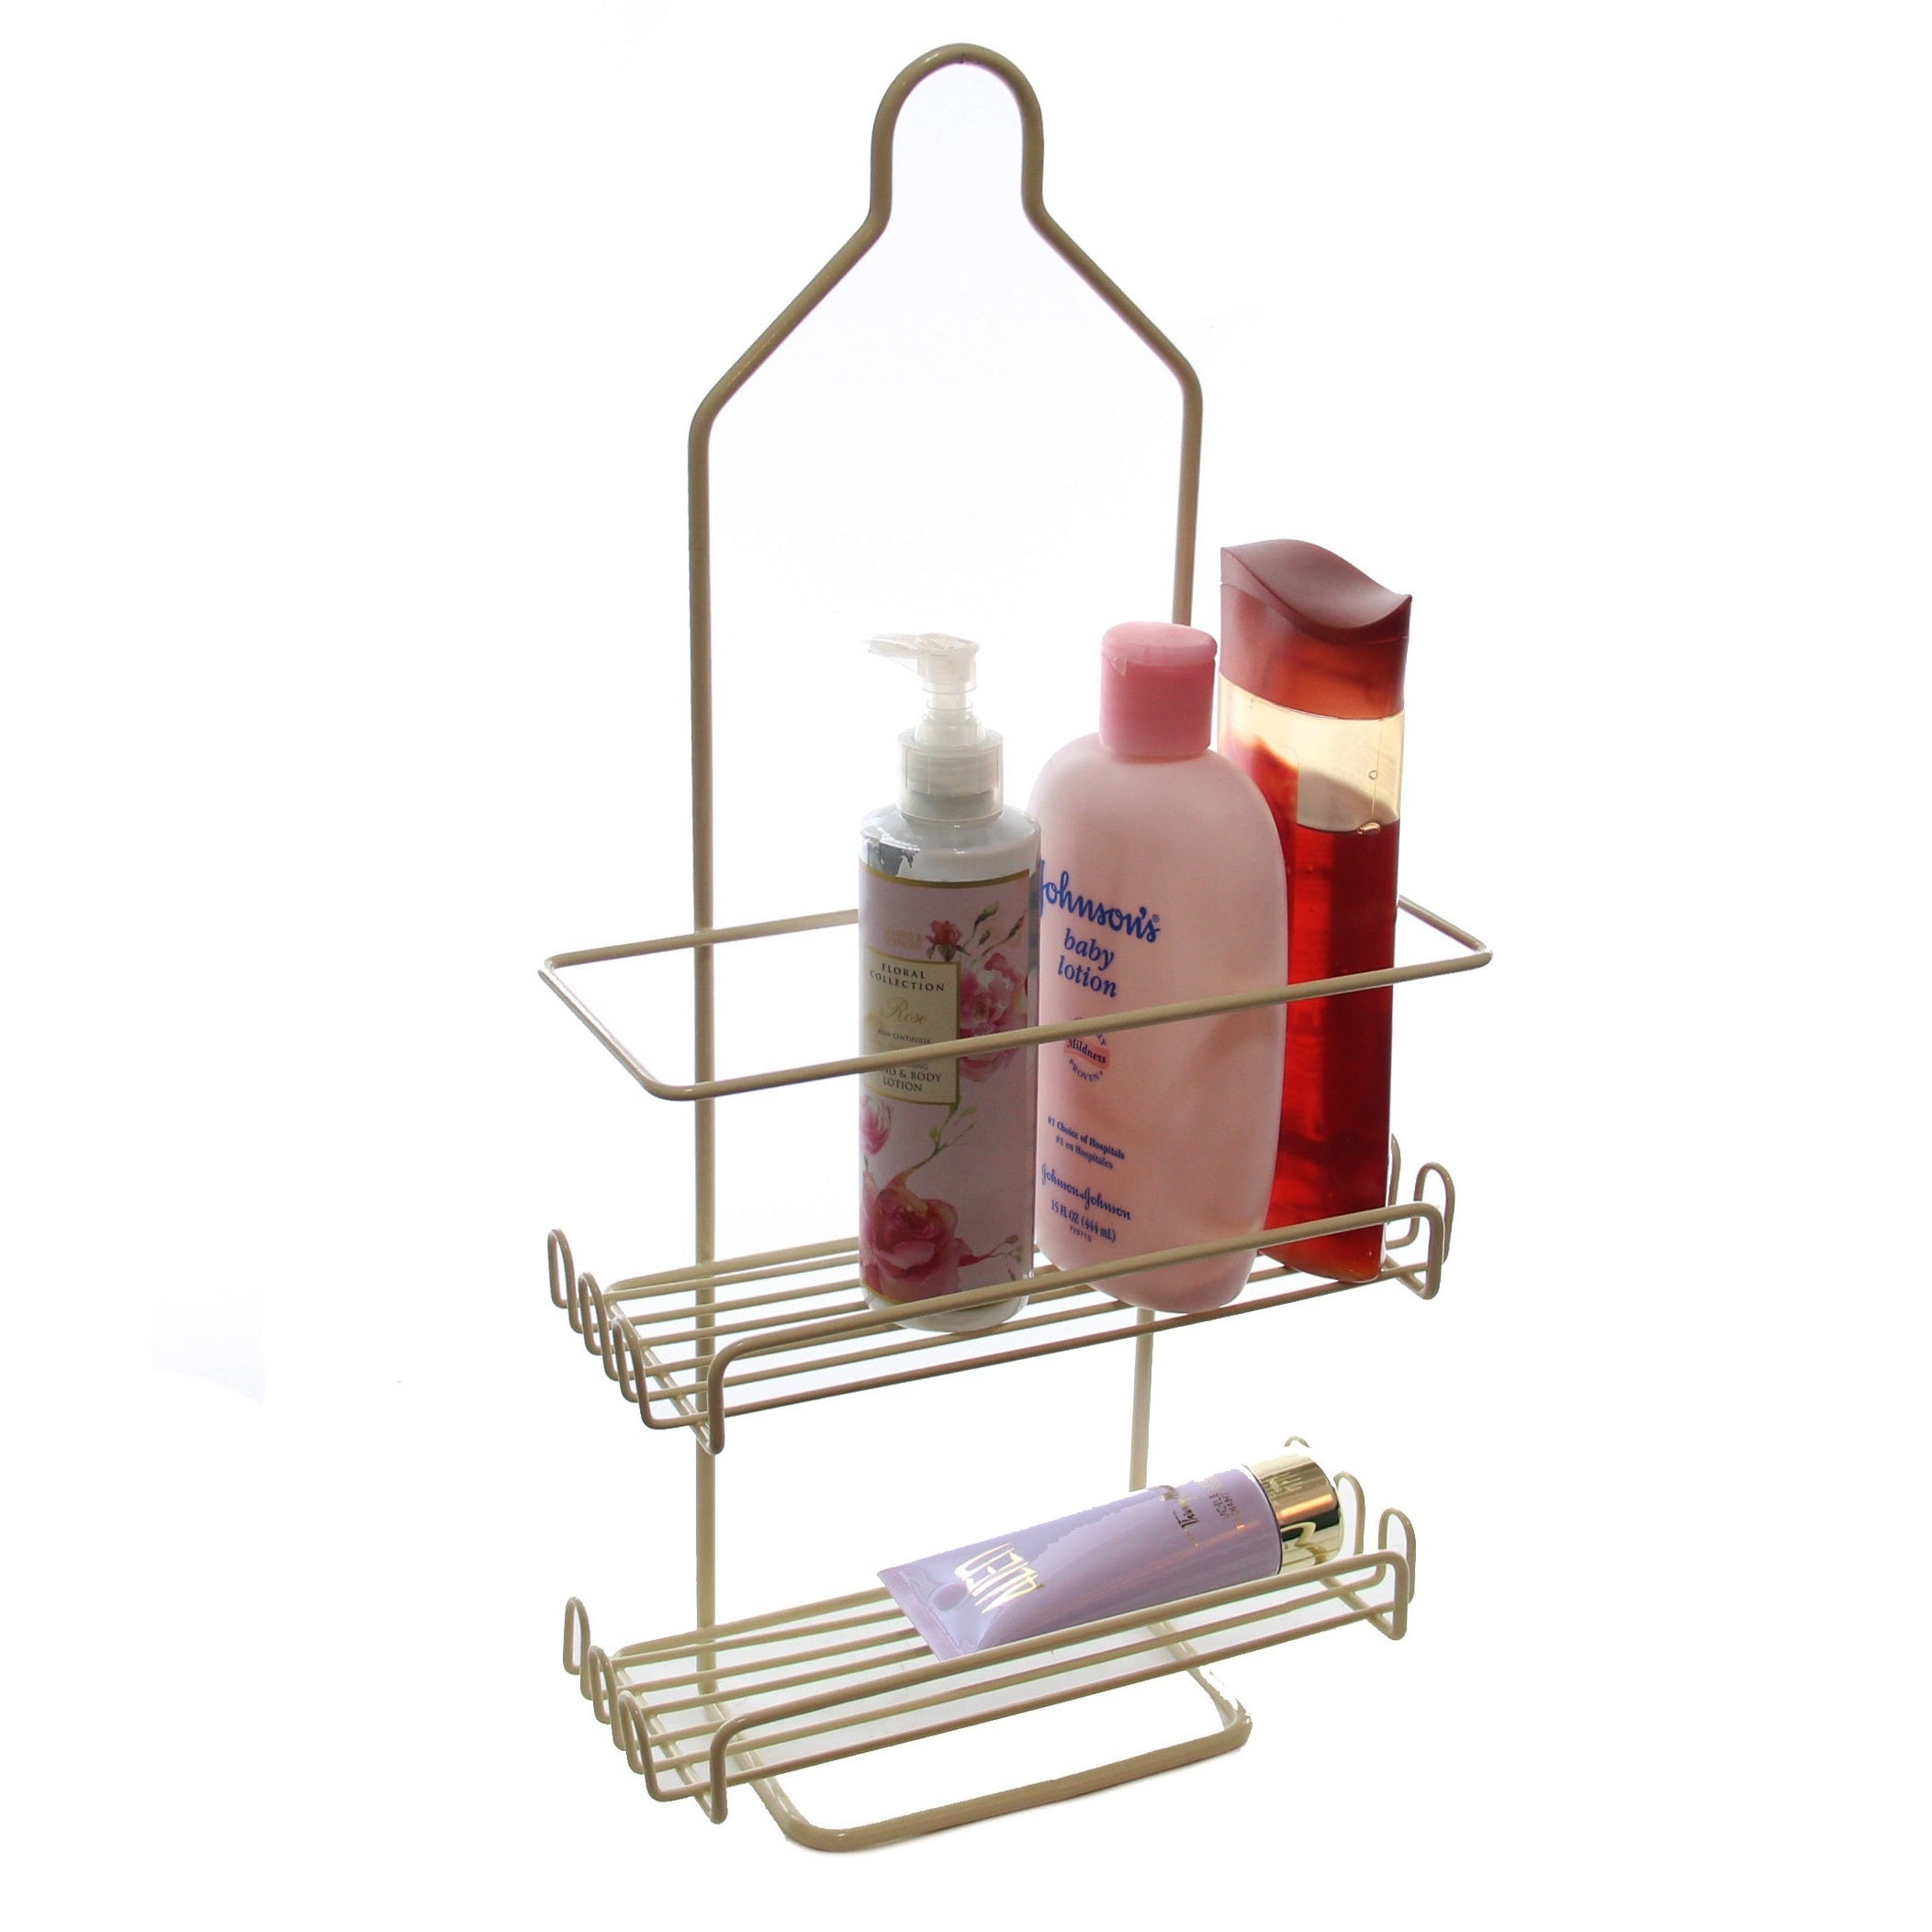 YBM Home Two Tier Deluxe Shower Caddy Rack Organizer | eBay